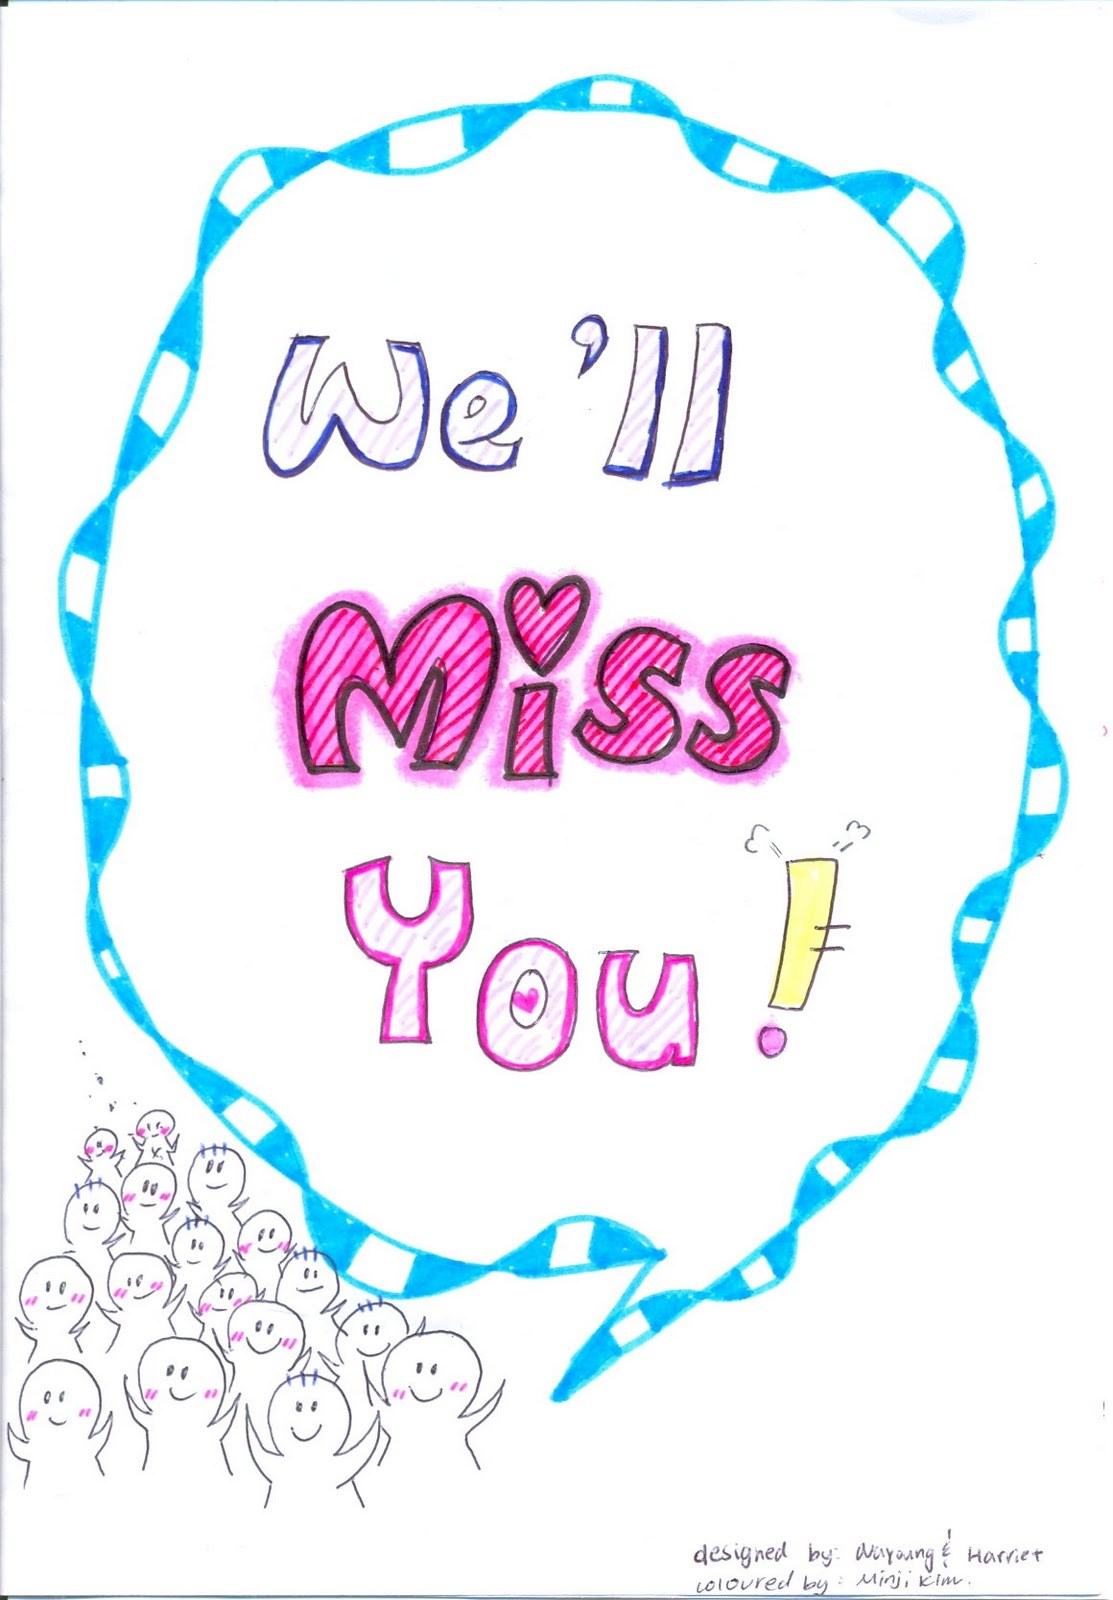 Office farewell clipart clip art free download Office farewell clipart 6 » Clipart Portal clip art free download